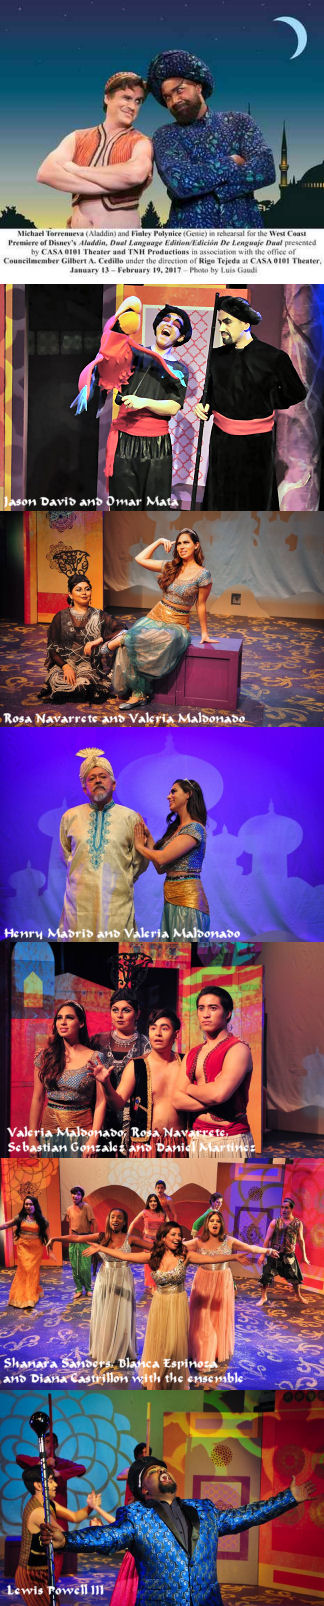 Casa 0101 Aladdin Cast - Pictures from various sources including Casa0101 Facebook Page